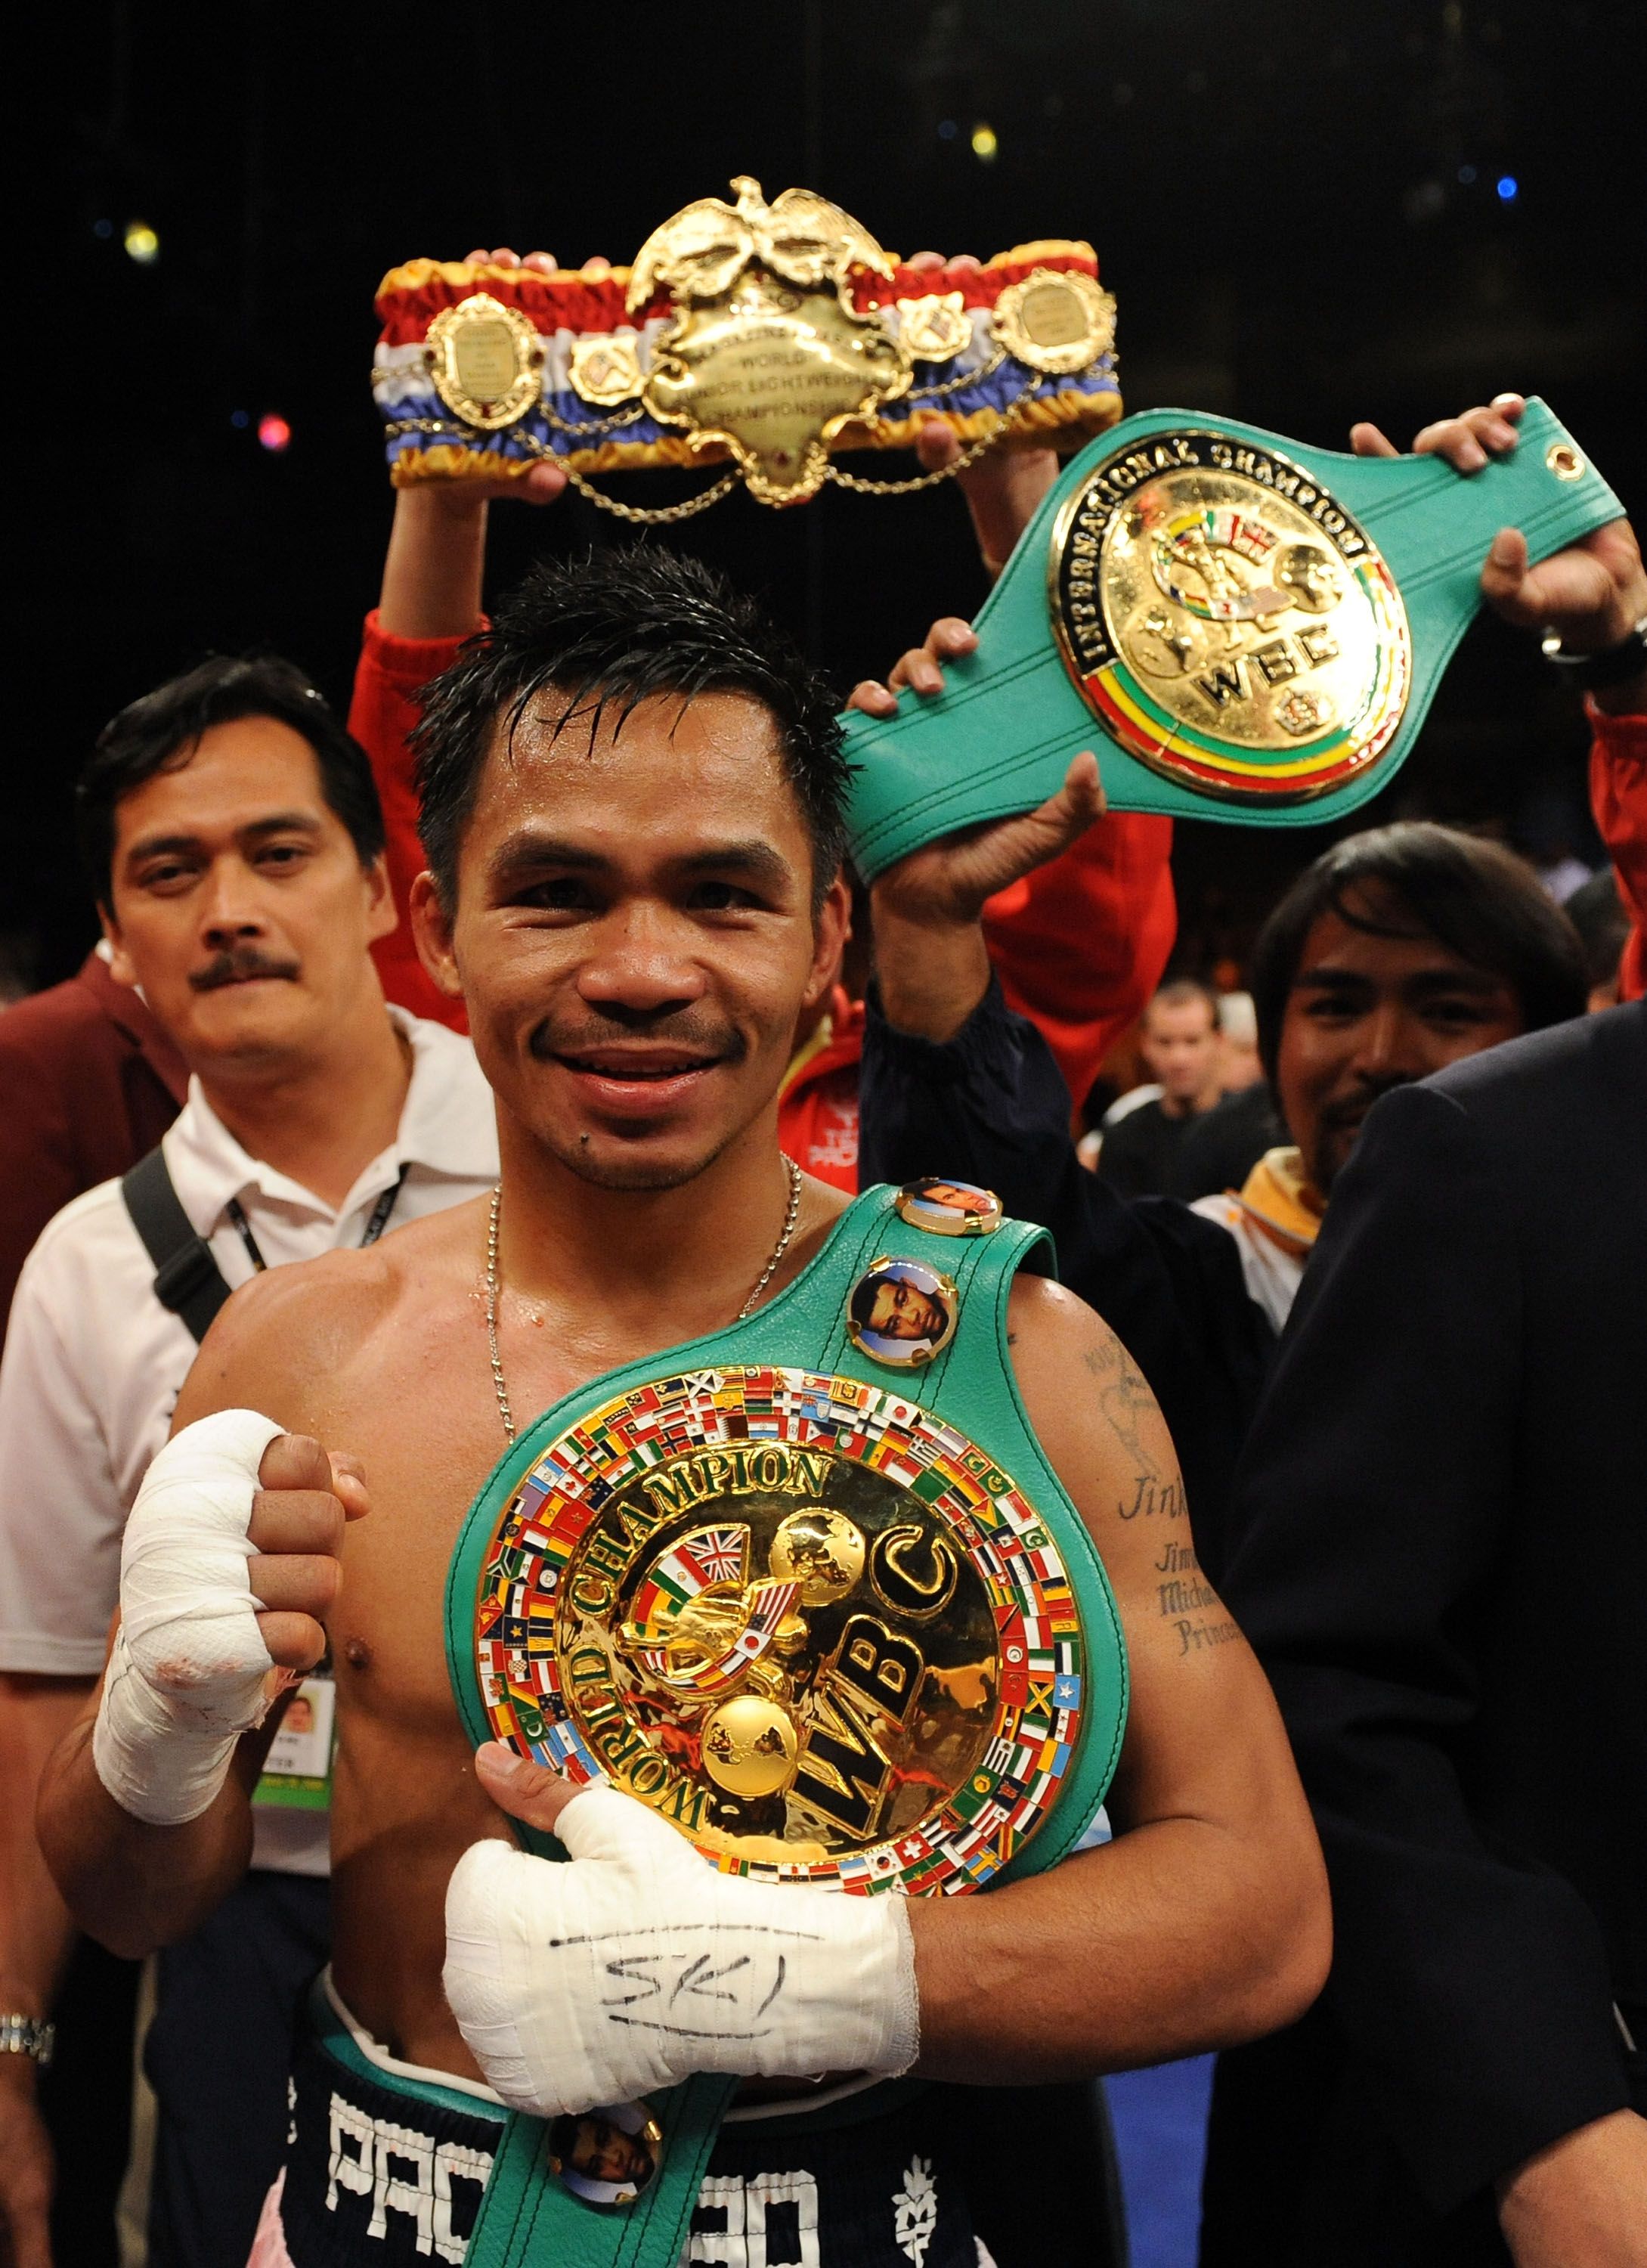 LAS VEGAS - JUNE 28:  Manny Pacquiao of the Philippines poses with his belts after he knocks out David Diaz during the ninth round of the WBC Lightweight Championship at the Mandalay Bay Events Center on June 28, 2008 in Las Vegas, Nevada.  (Photo by Harr